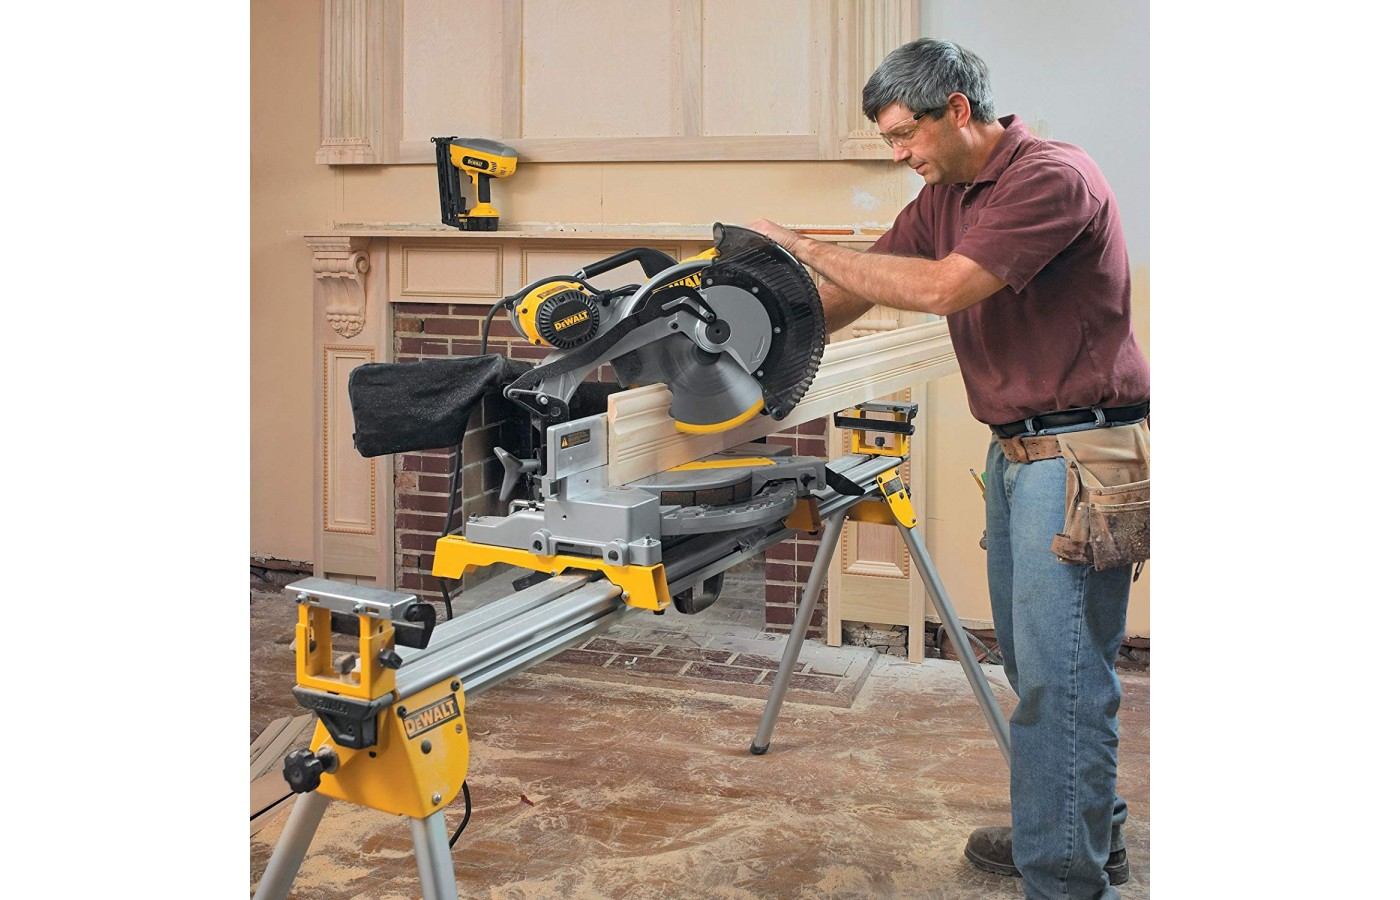 This miter saw is lightweight and portable